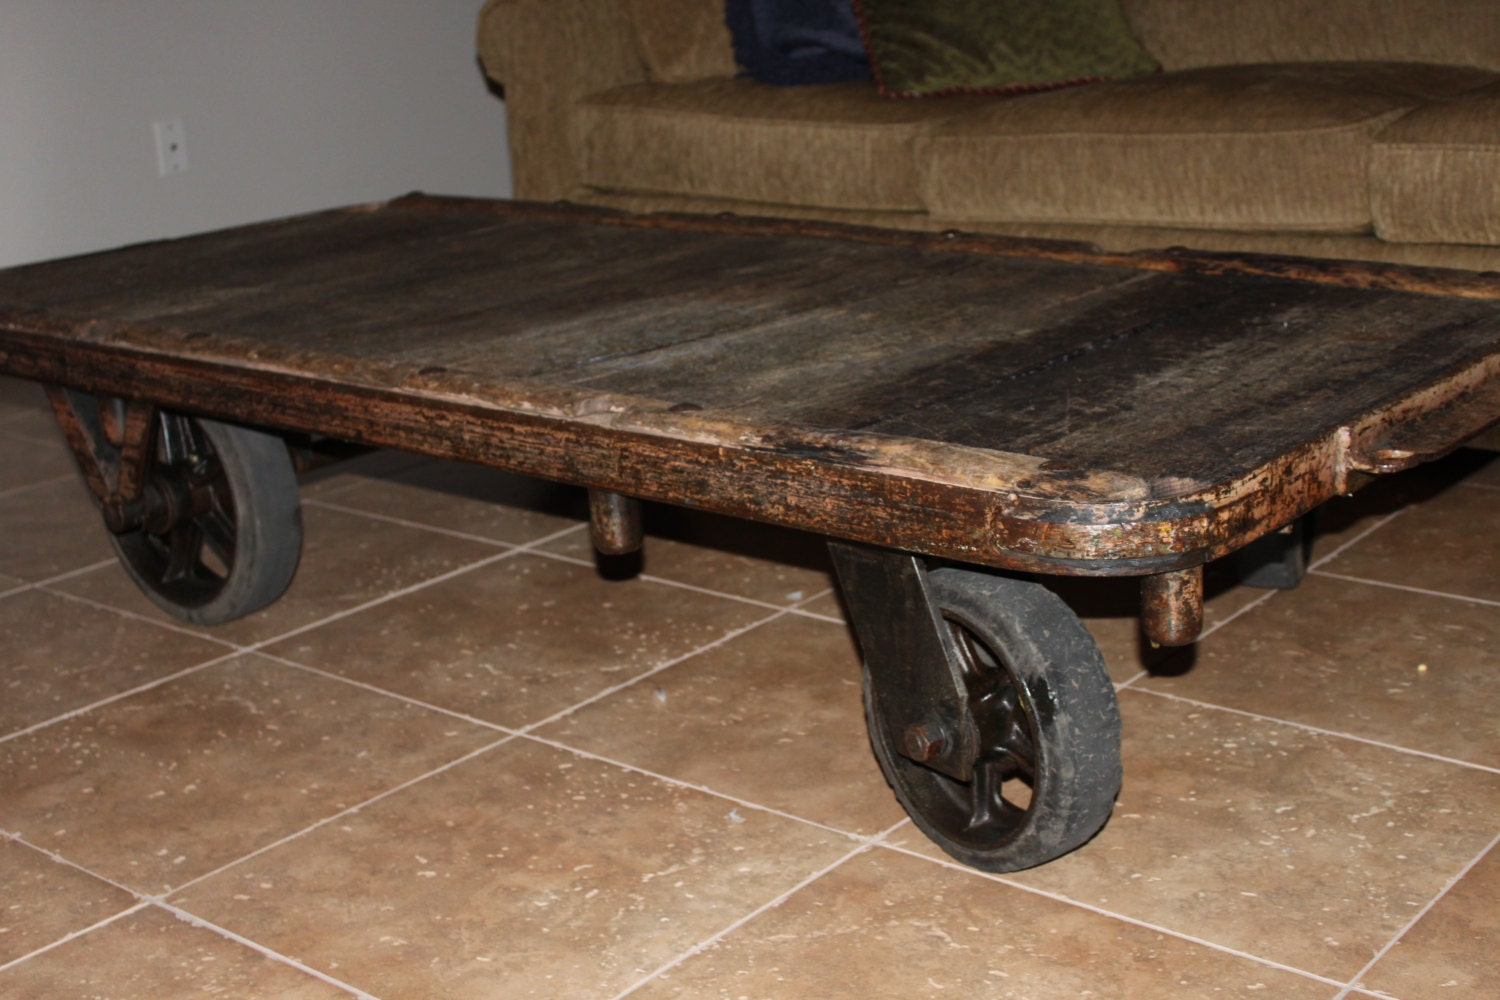 Vintage 1950s Industrial Cart Coffee Table By Riverratantiques